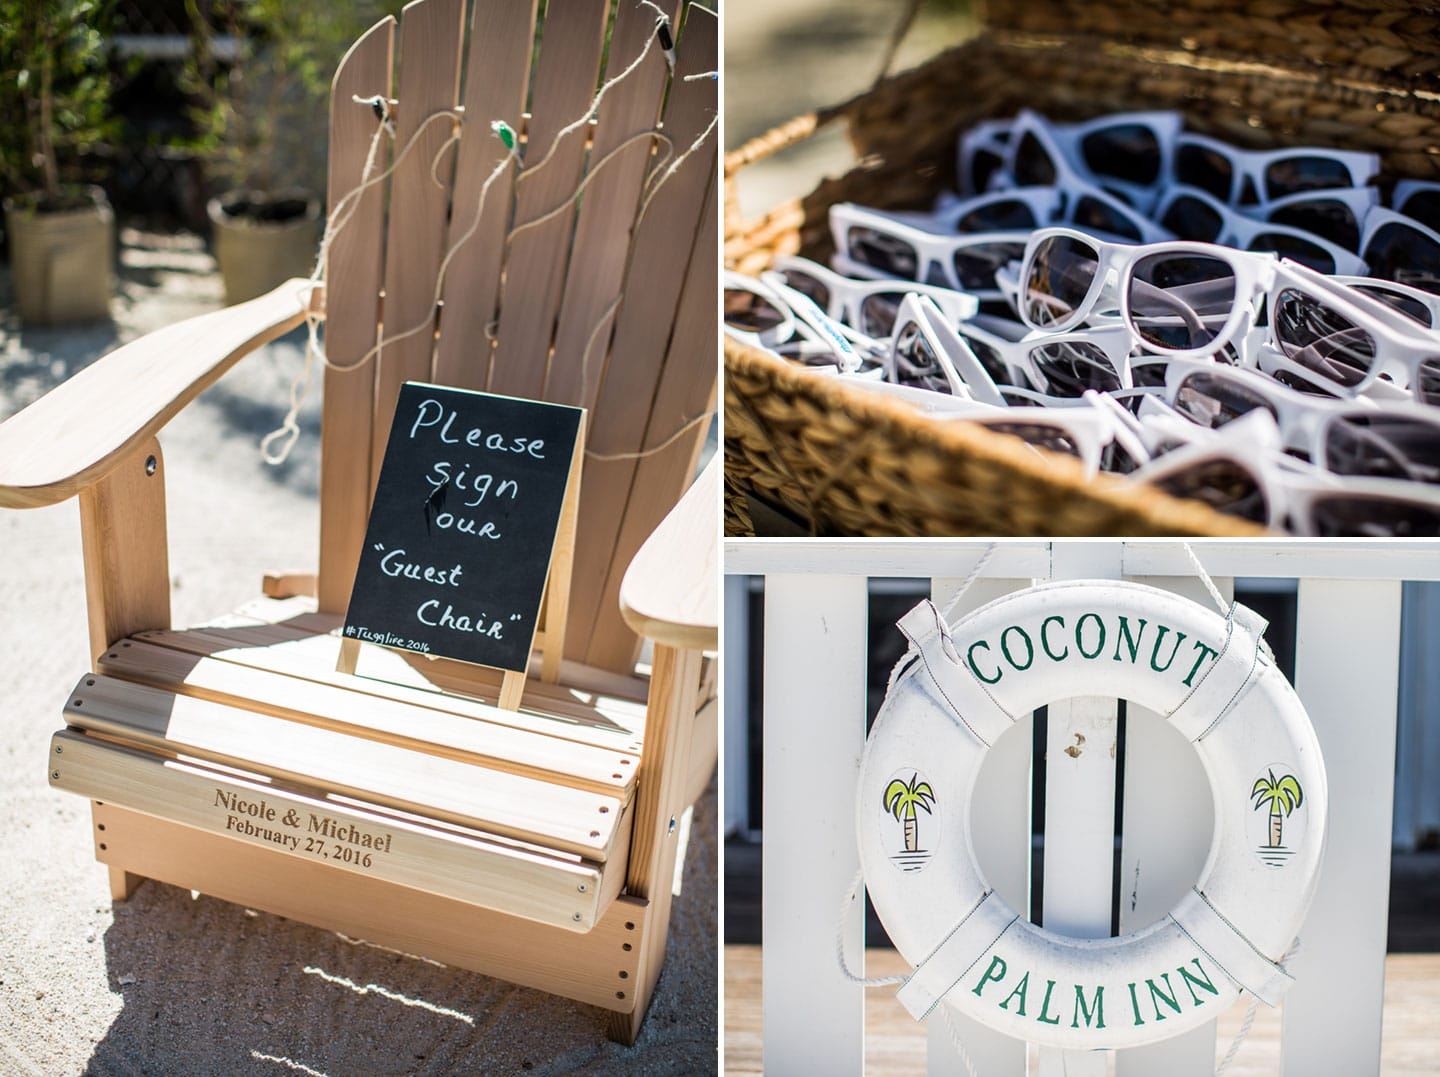 91-Coconut-Palm-Inn-Wedding-Photography